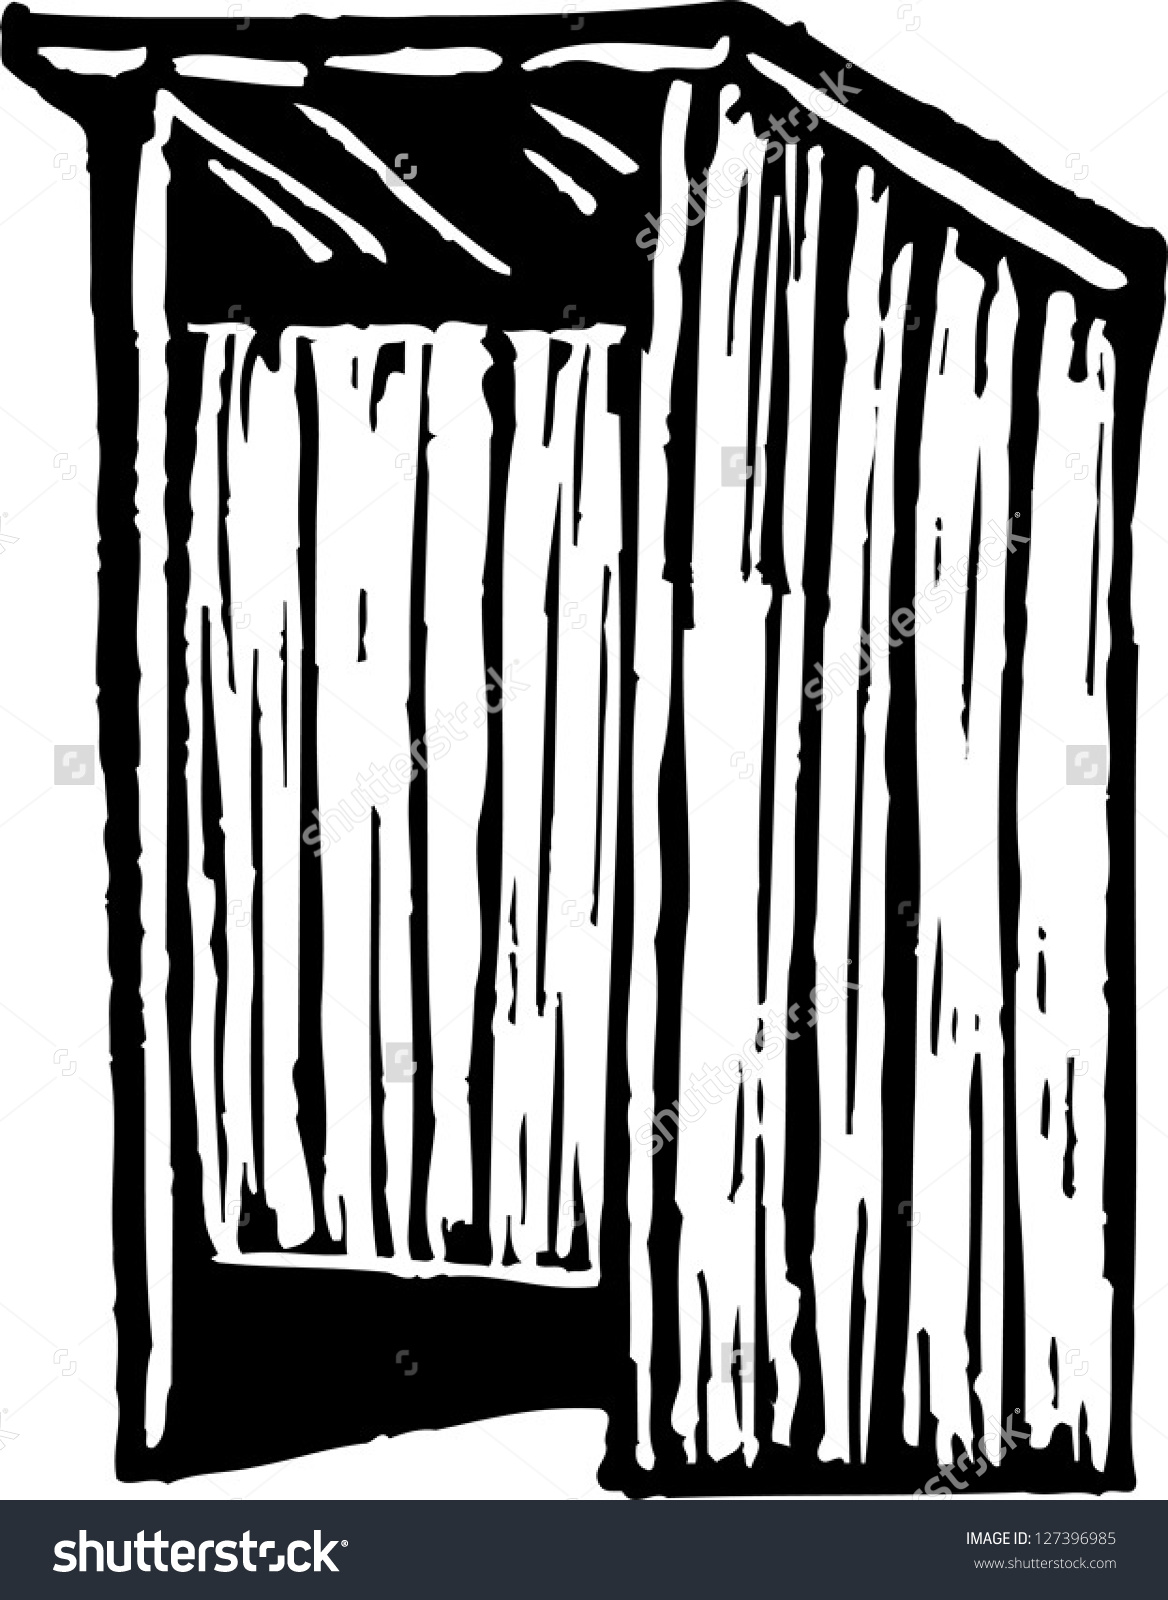 Black And White Vector Illustration Of A Latrine.